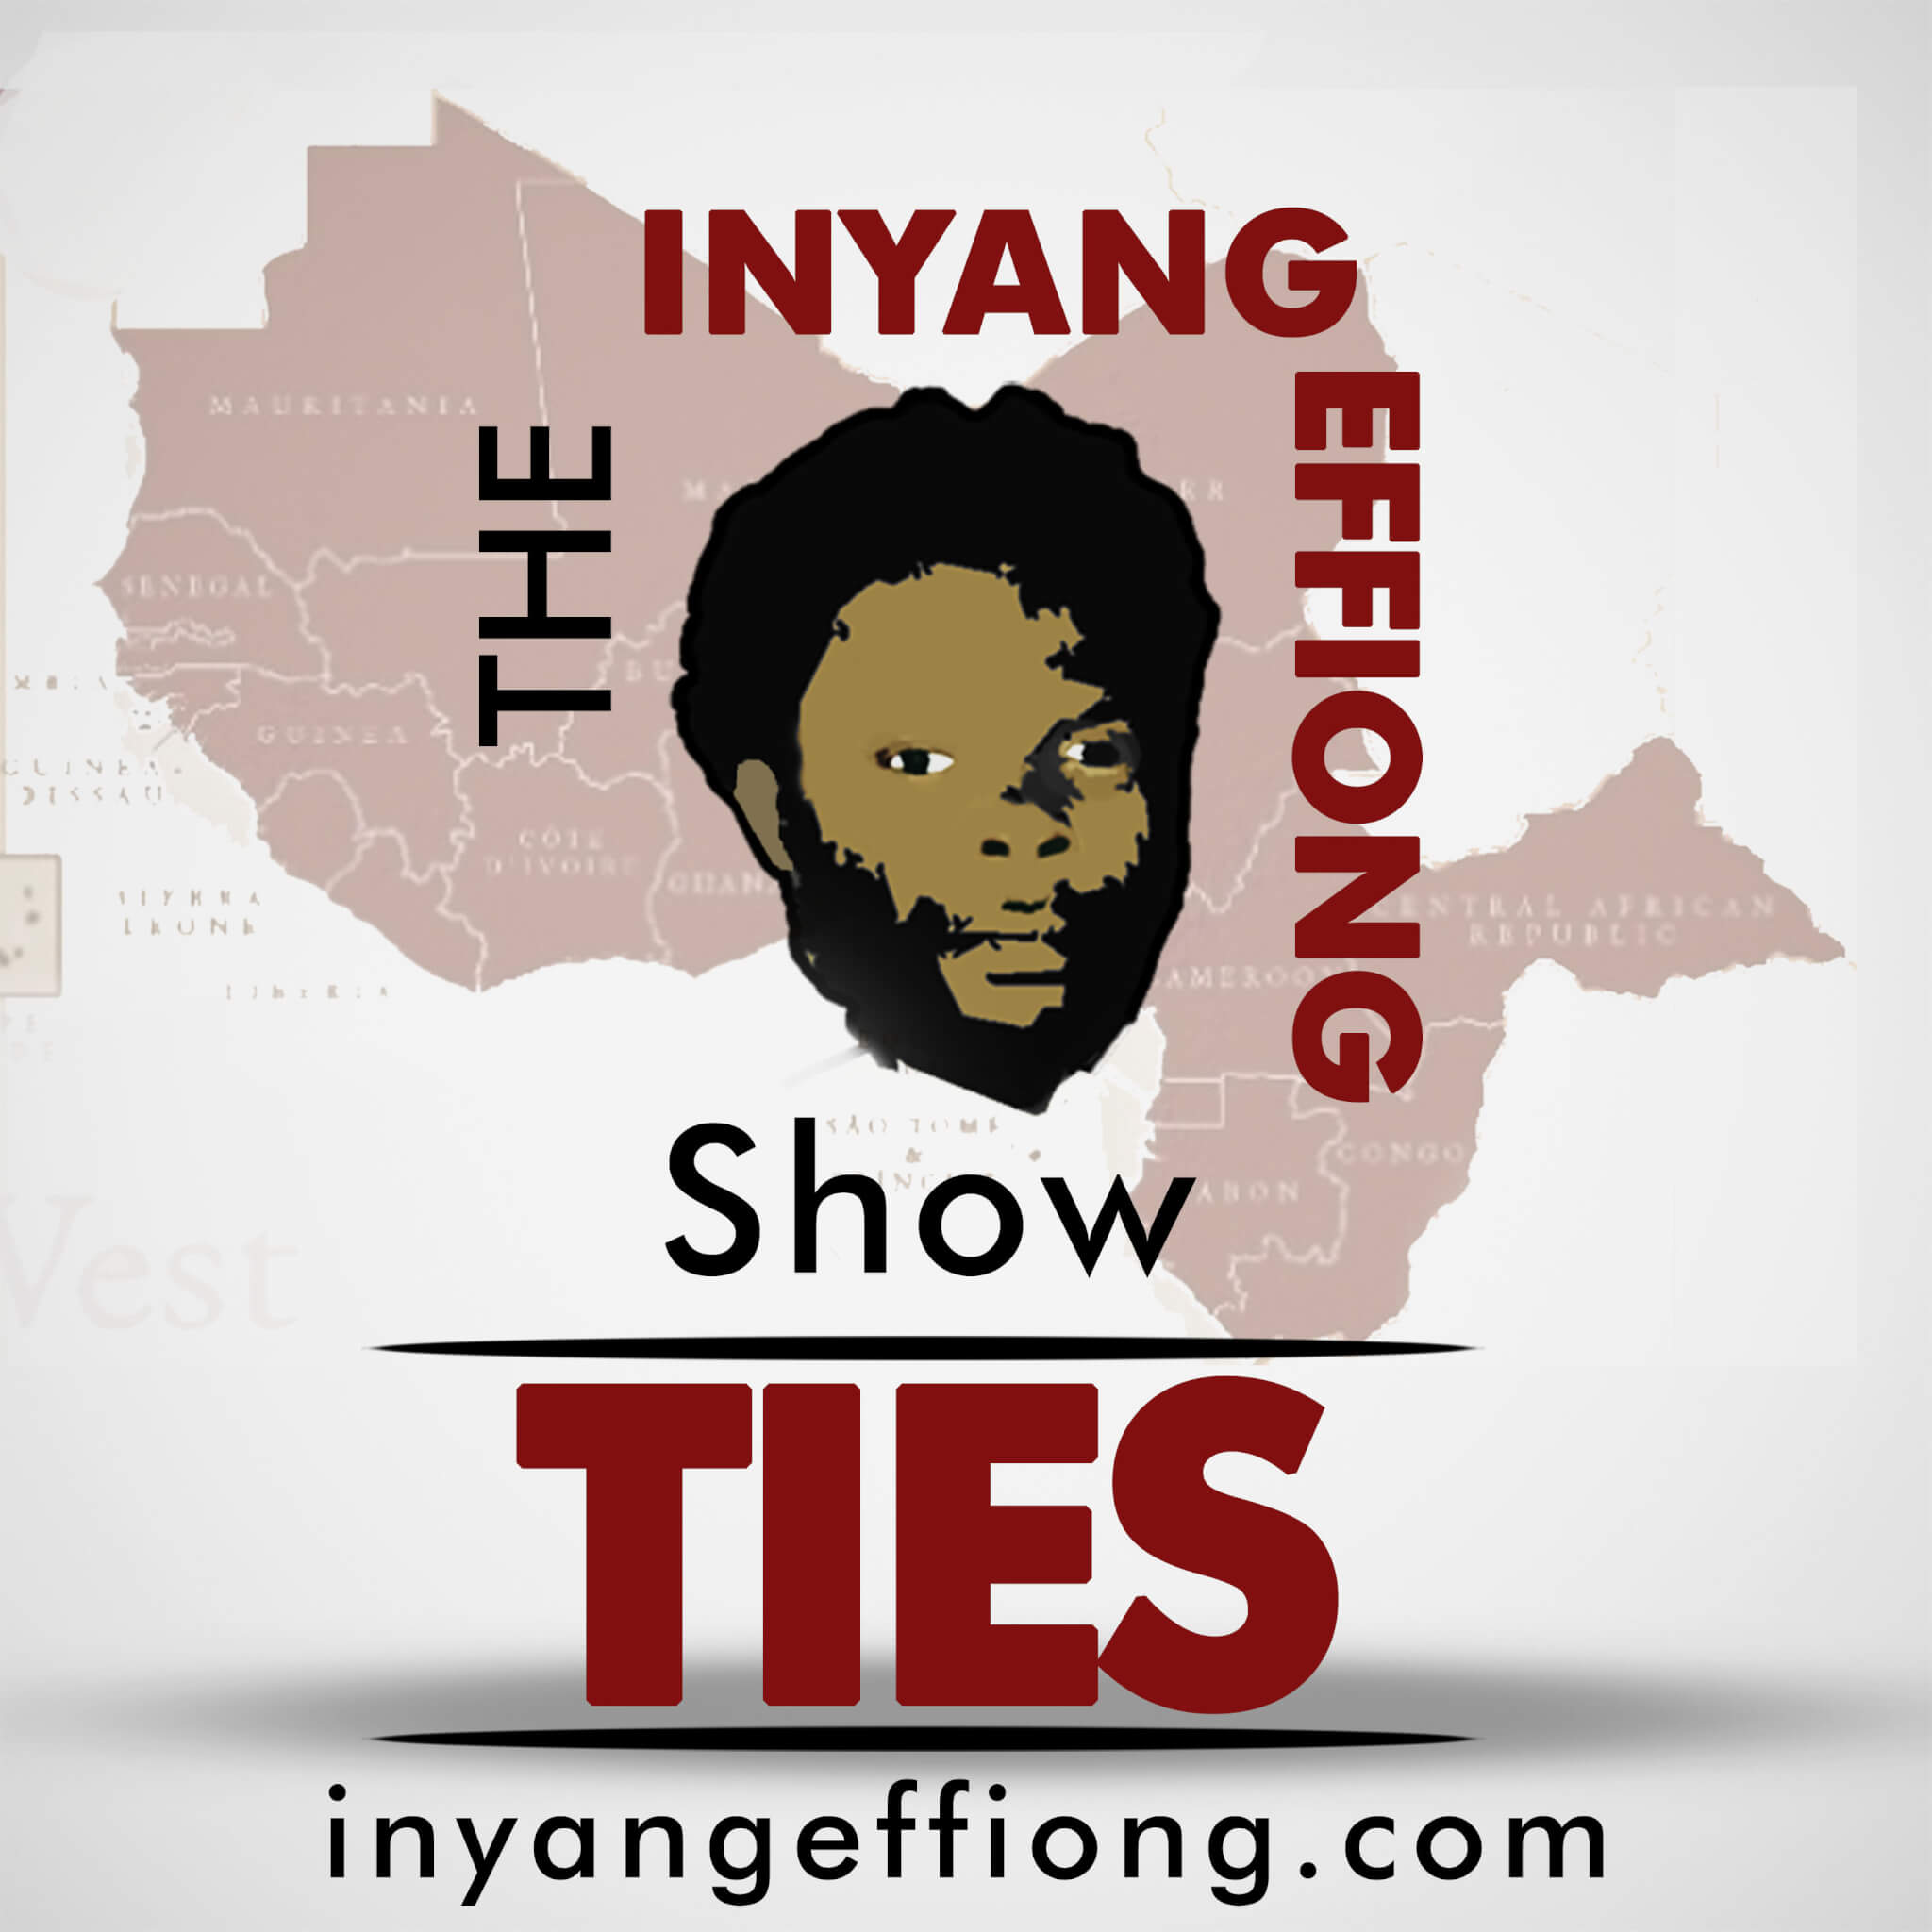 The Inyang Effiong Show